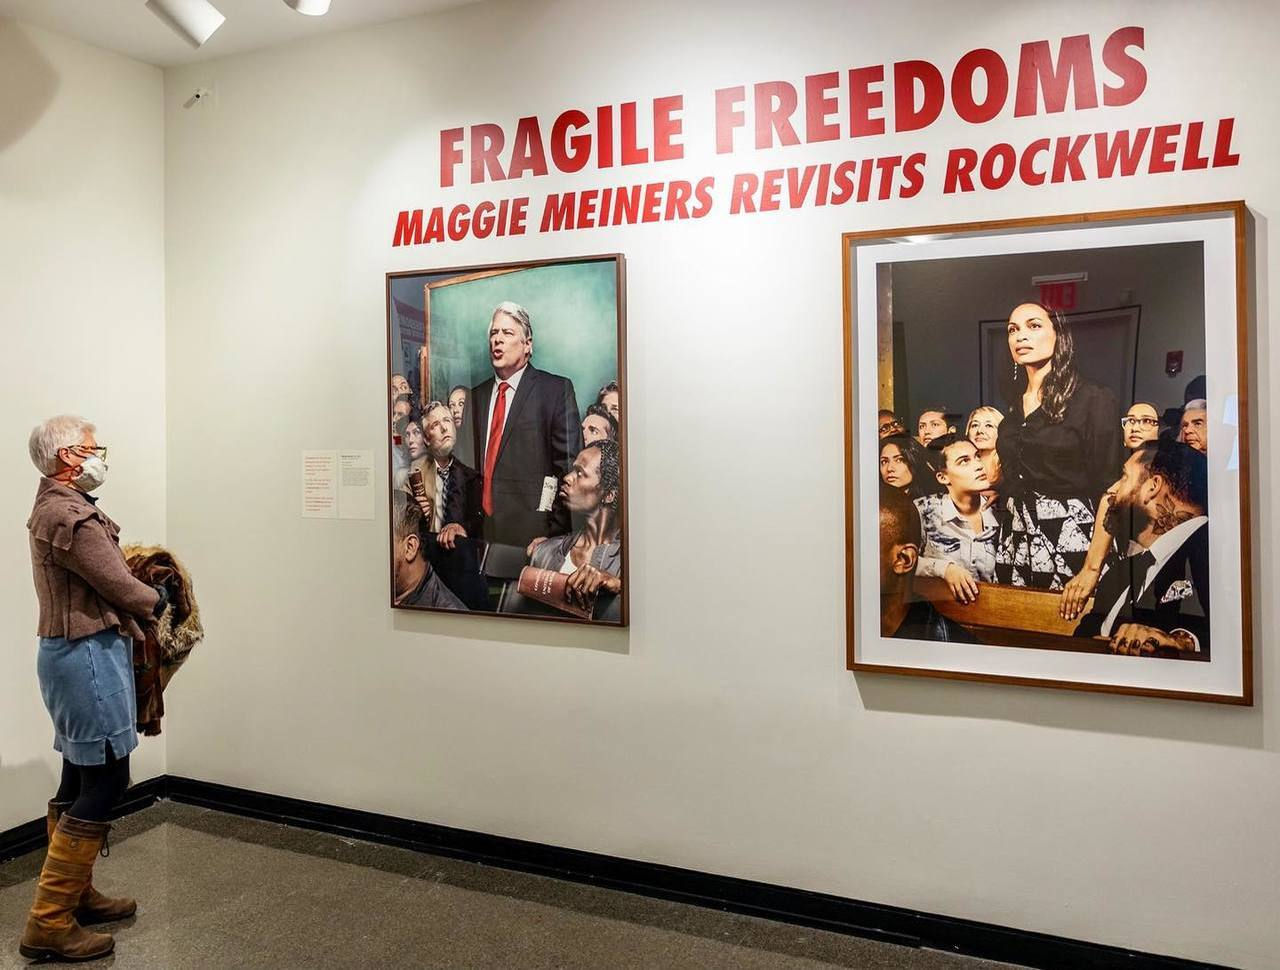 Fragile Freedoms: Maggie Meiners Revisits Rockwell exhibiiton opening